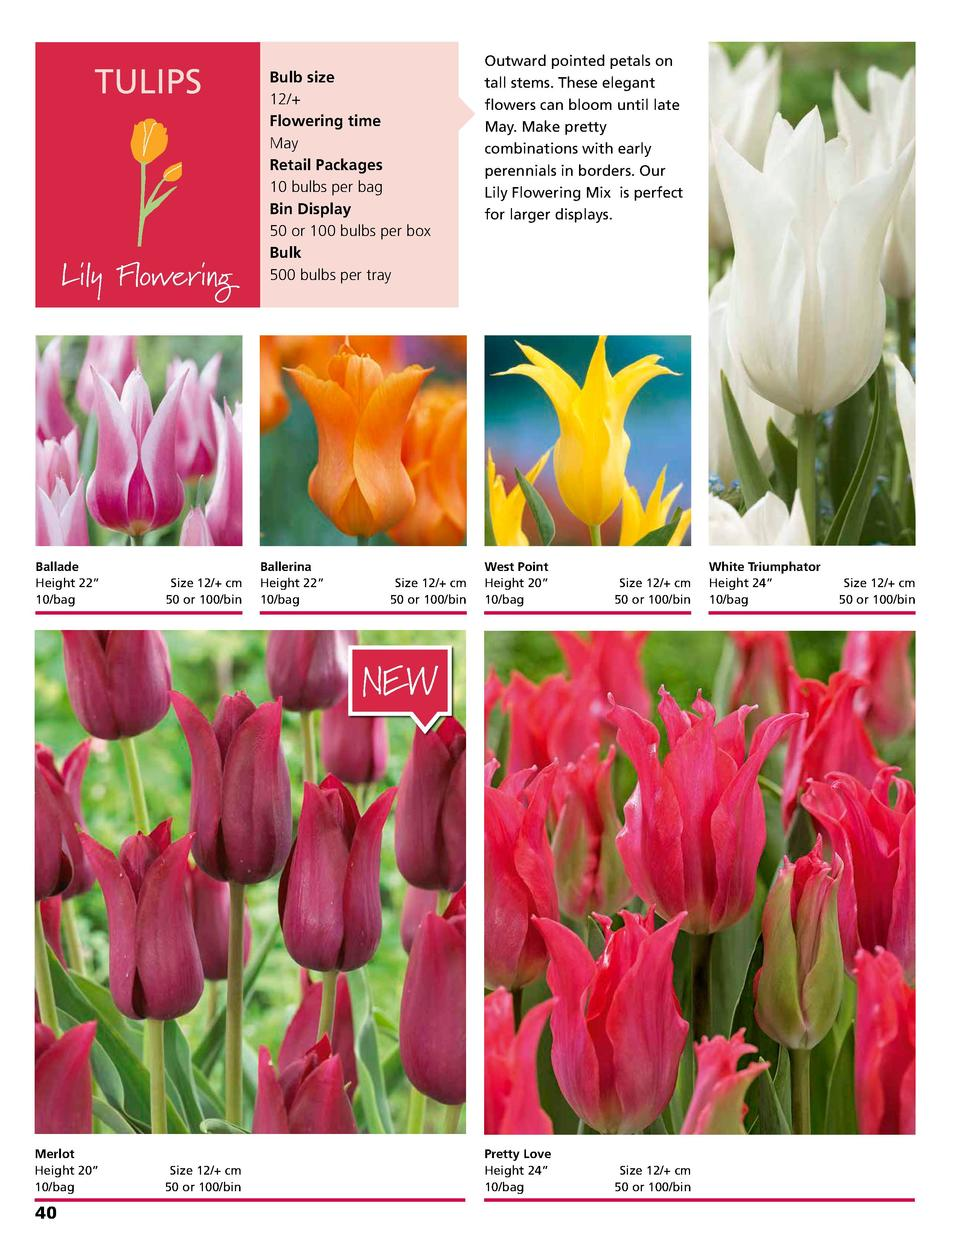 TULIPS  Lily Flowering  Ballade Height 22      10 bag   Size 12   cm 50 or 100 bin  Bulb size 12   Flowering time May Reta...